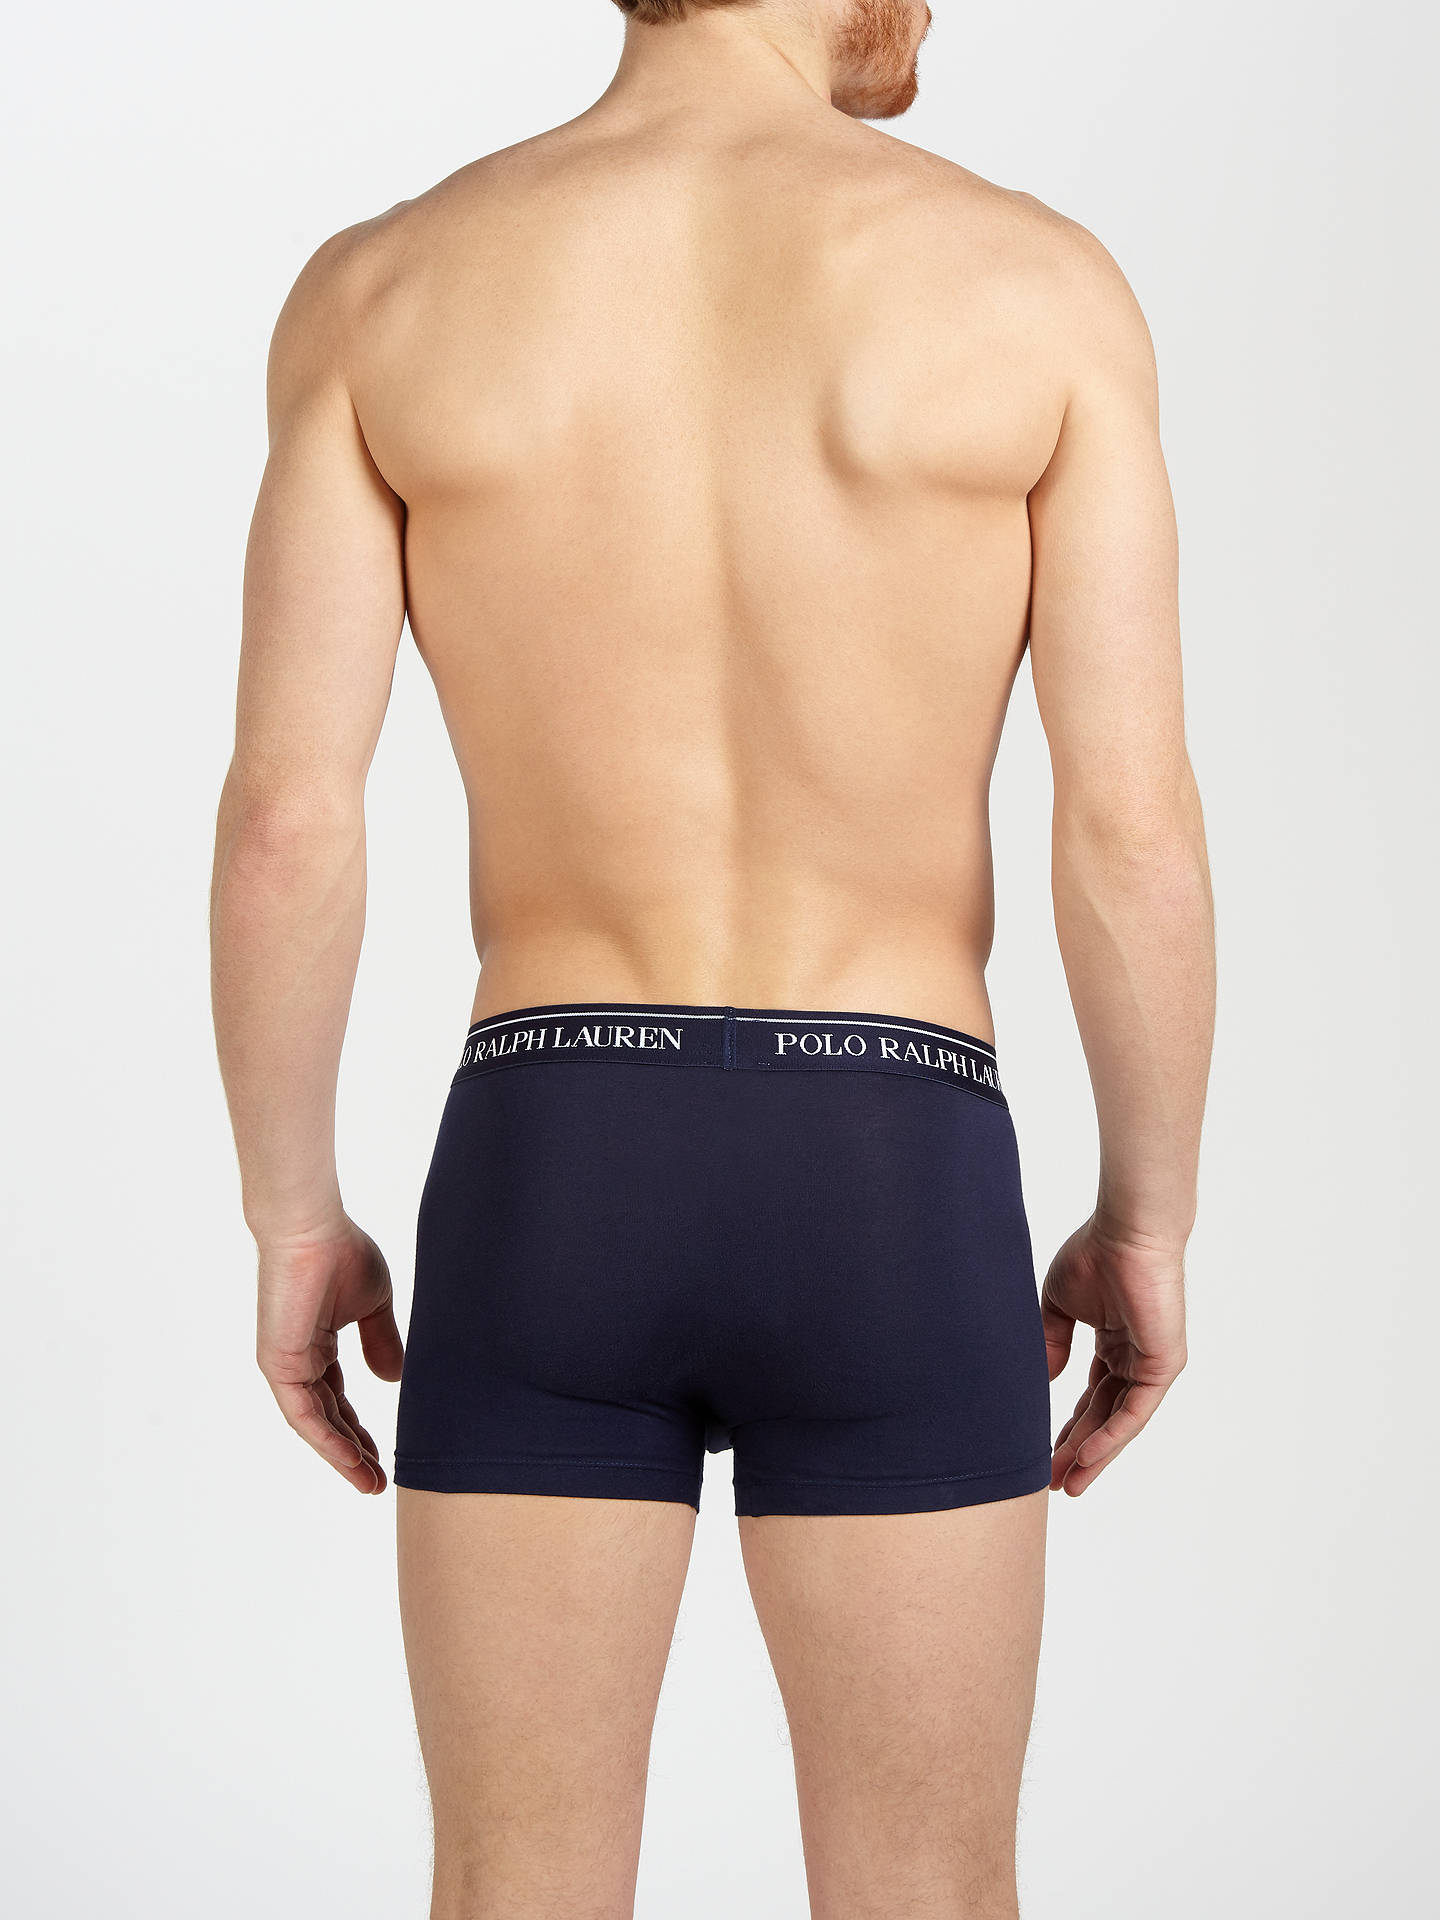 BuyPolo Ralph Lauren Stretch Cotton Trunks, Pack of 3, Navy, S Online at johnlewis.com